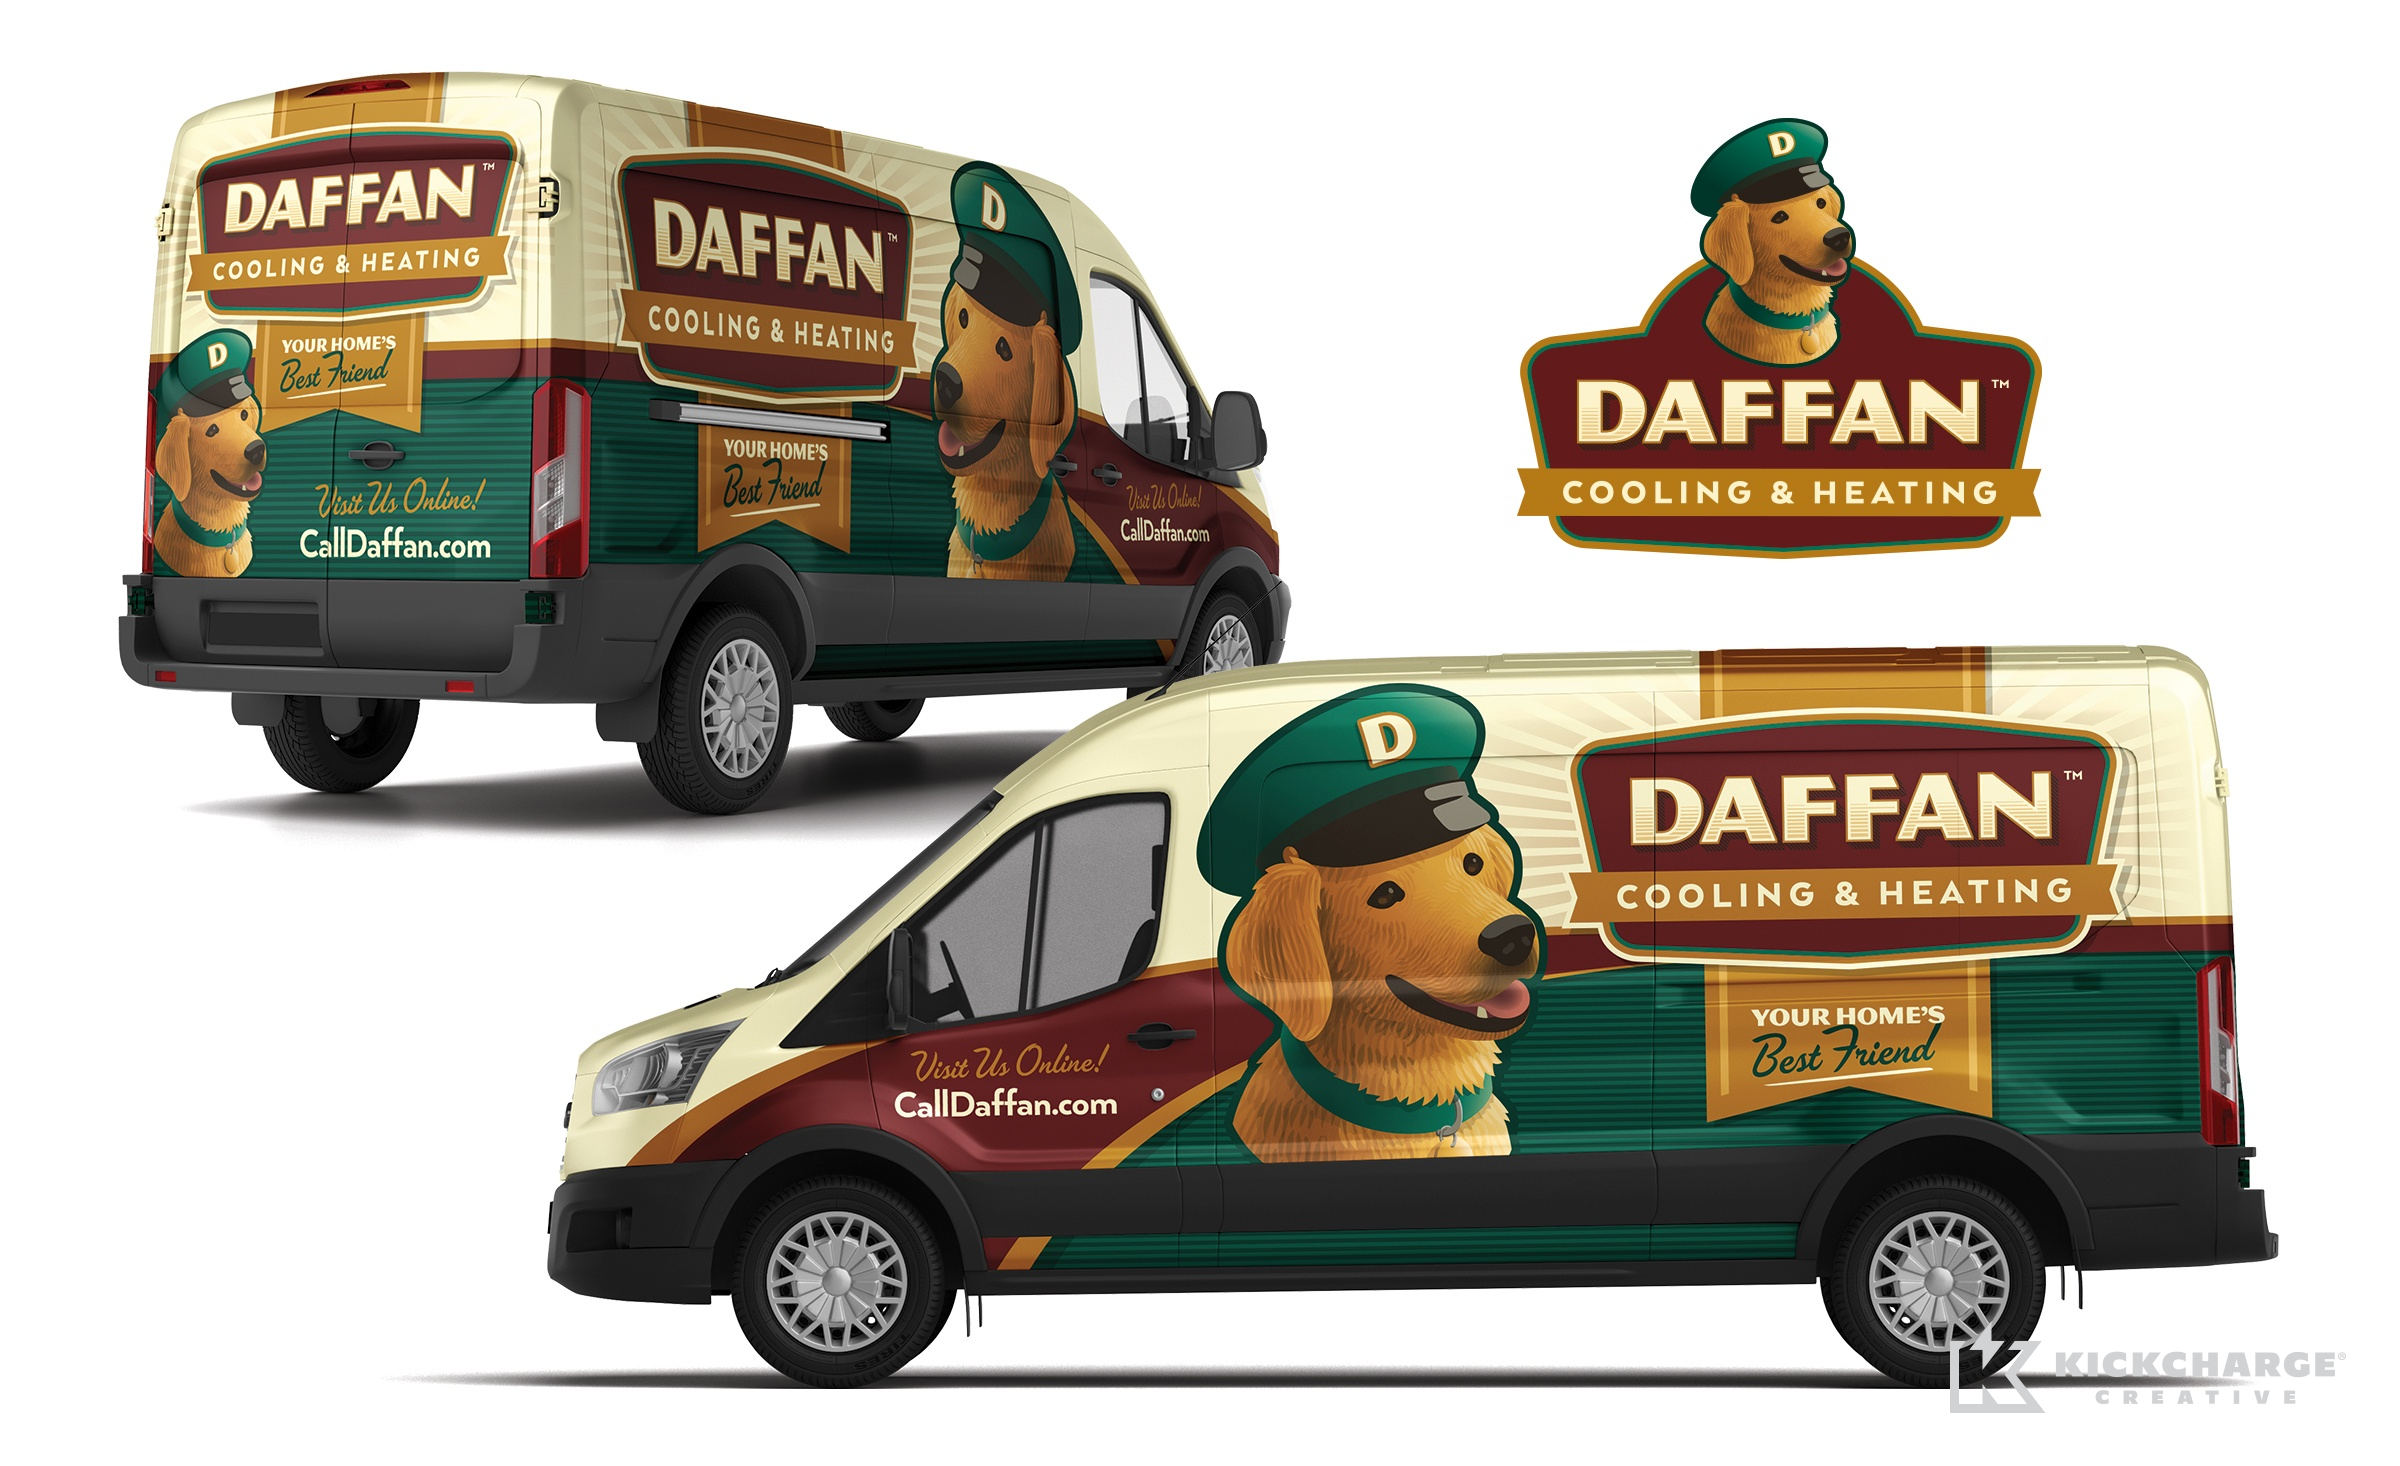 Daffan Cooling & Heating